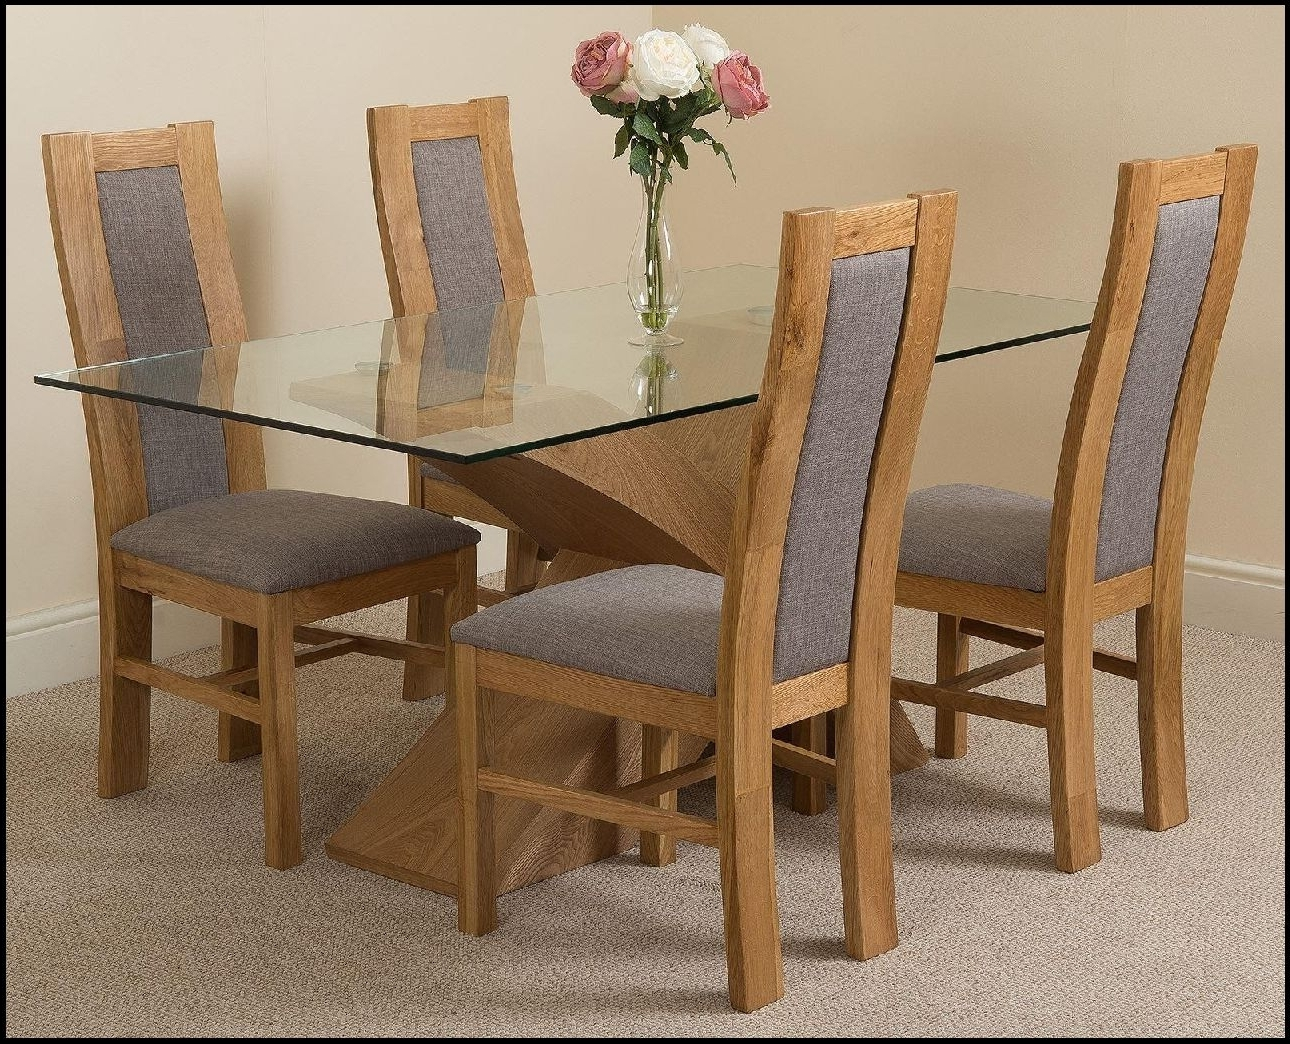 2017 Wonderfull Cube Oak 160 Cm Dining Table And 6 Chairs Quercus Living With Oak Glass Dining Tables (View 11 of 25)